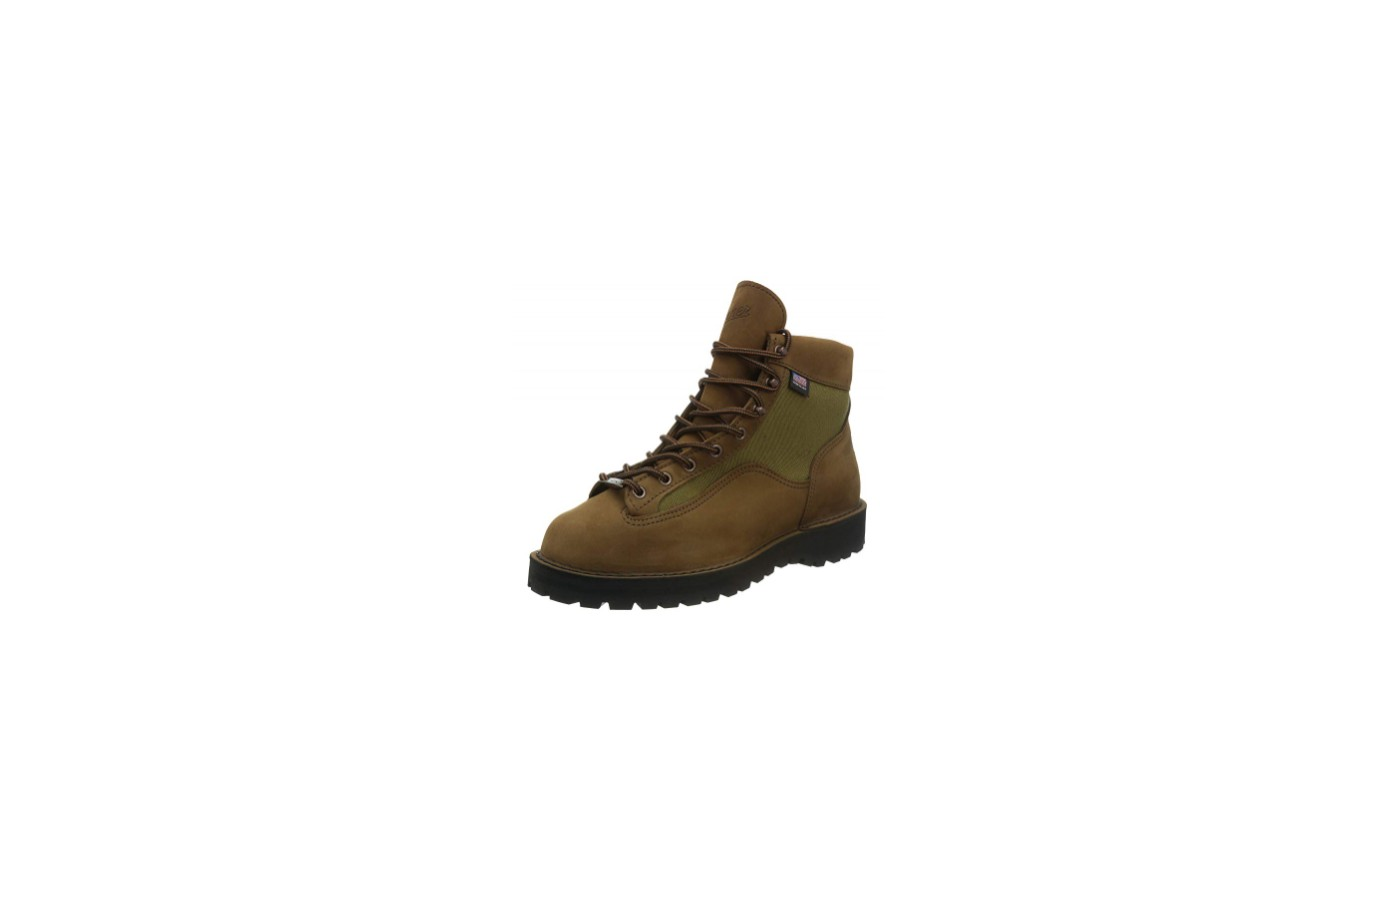 https://www.amazon.com/Danner-LIGHT-Hiking-Boots-BROWN/dp/B0002L4NE6/ref=sr_1_2_sspa?ie=UTF8&qid=1541010749&sr=8-2-spons&keywords=danner+mountain+light+ii&psc=1